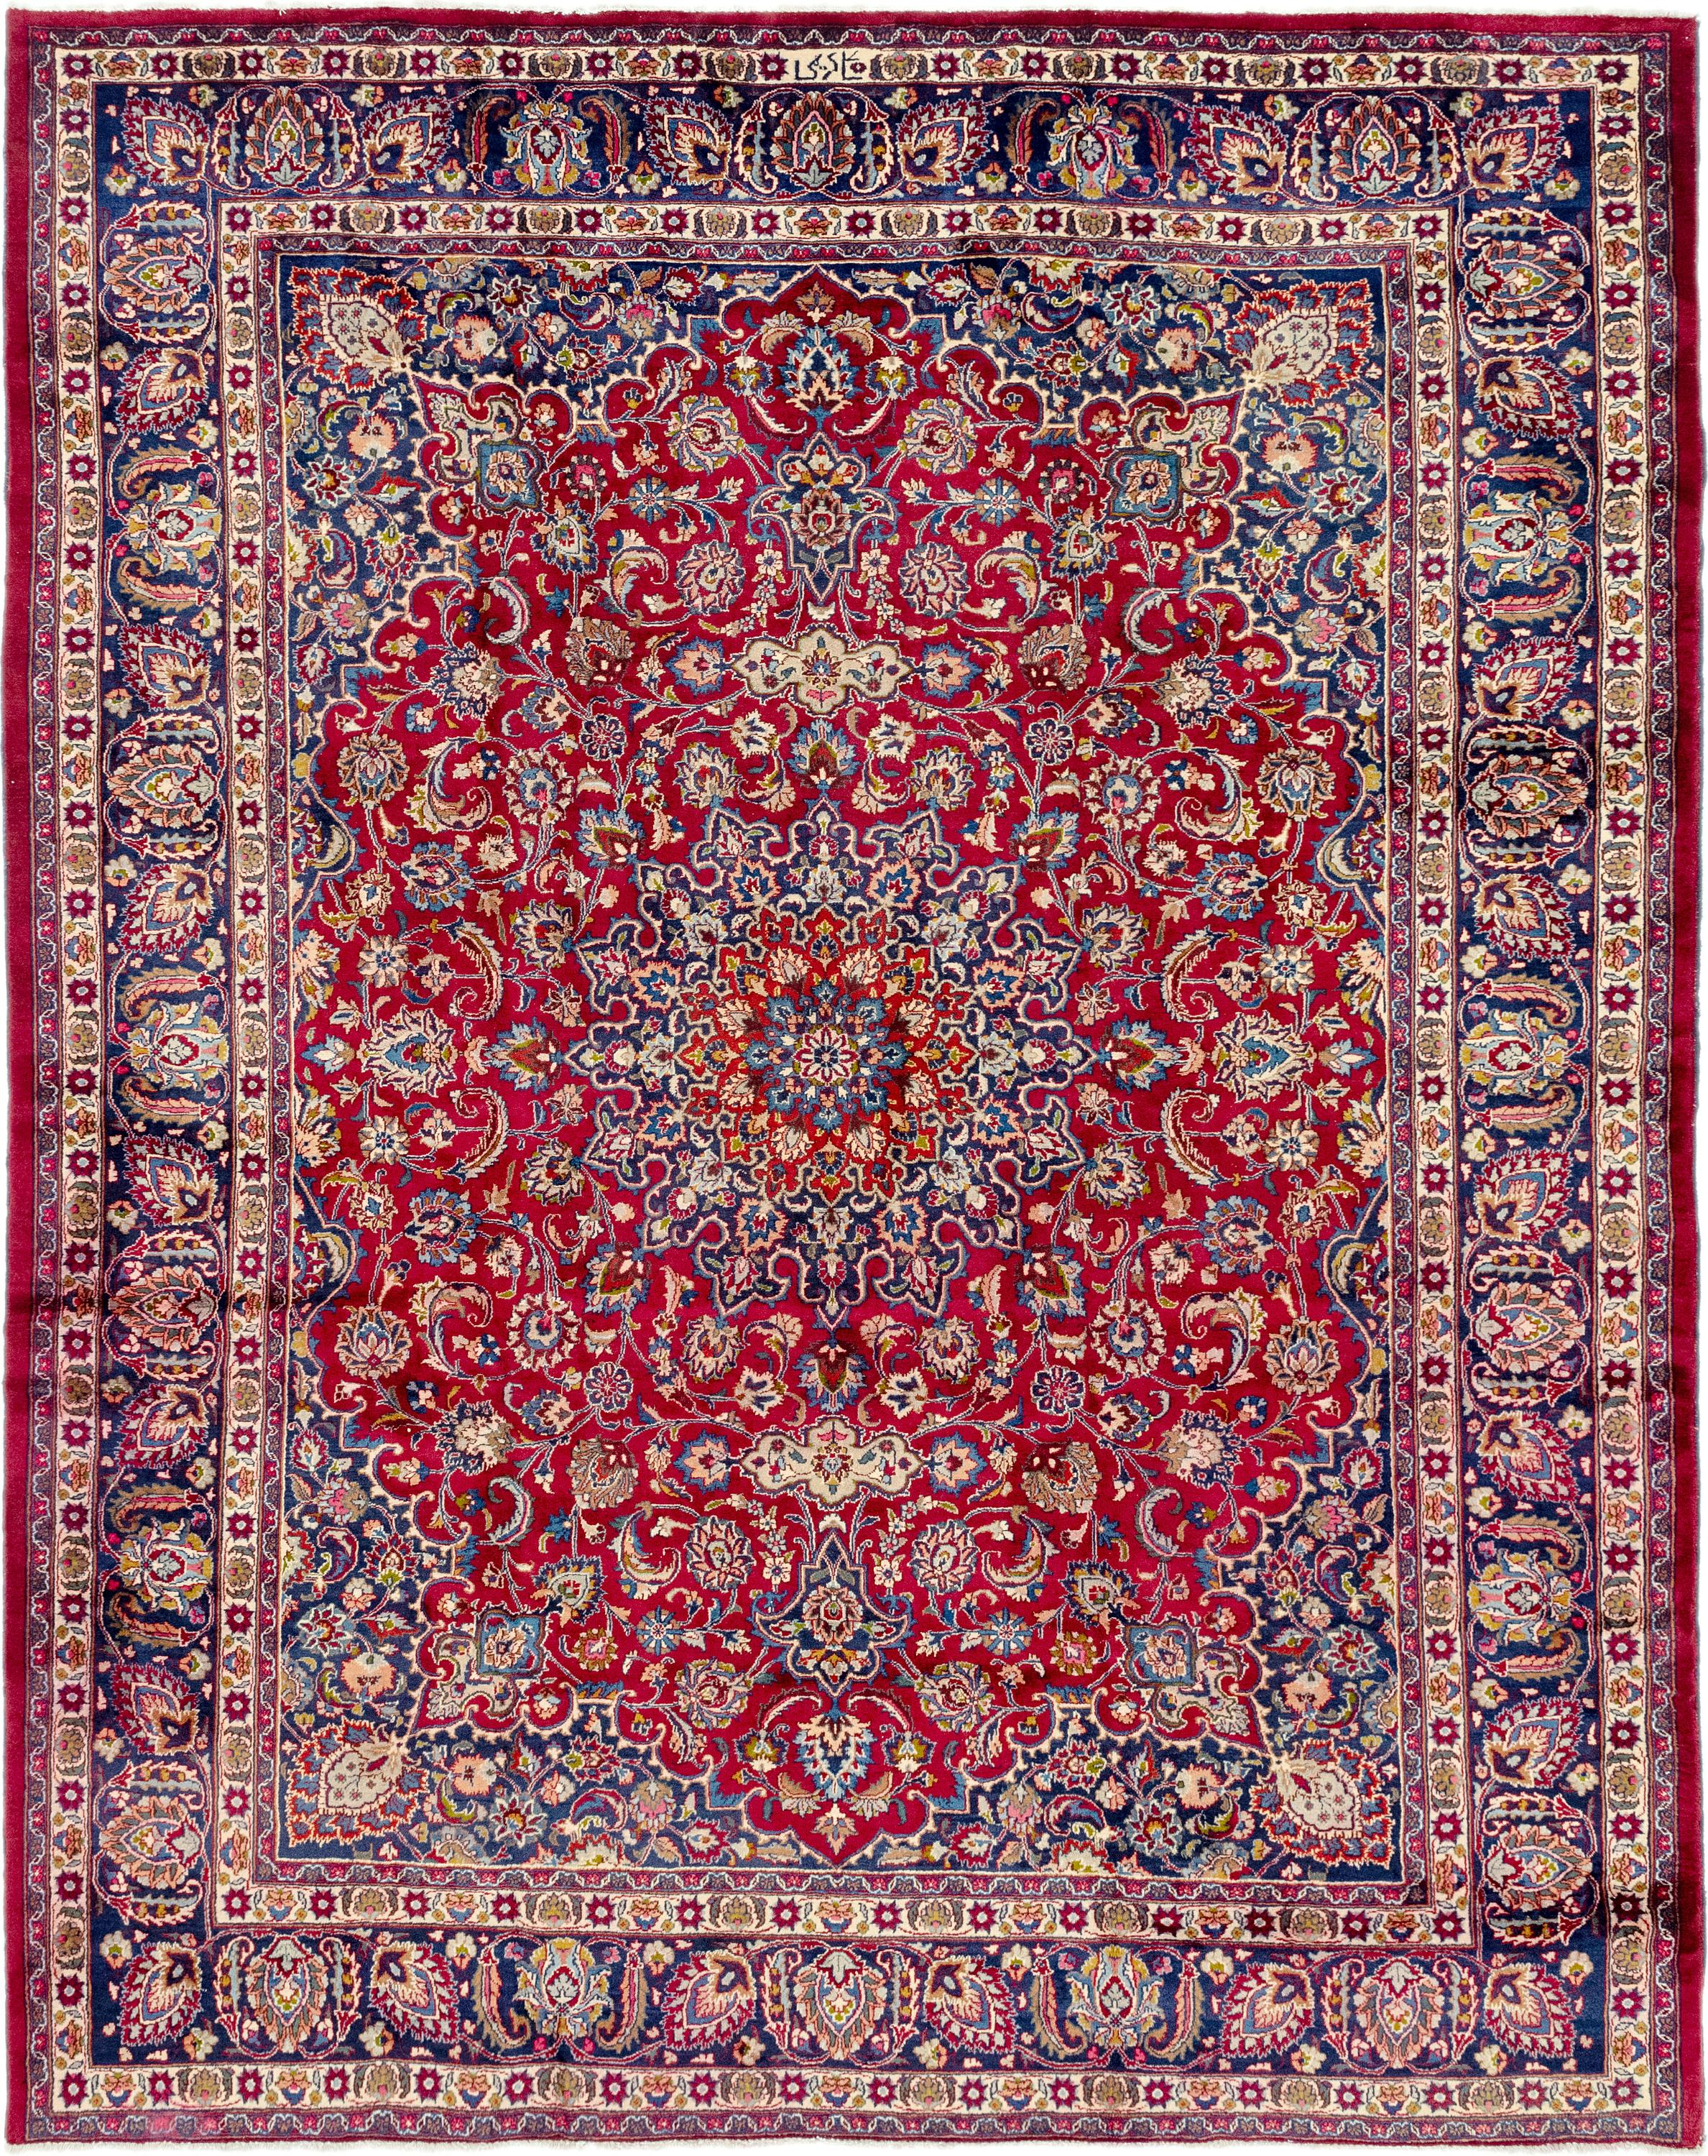 Red 9 10 X 12 8 Mashad Persian Rug Esalerugs With Images